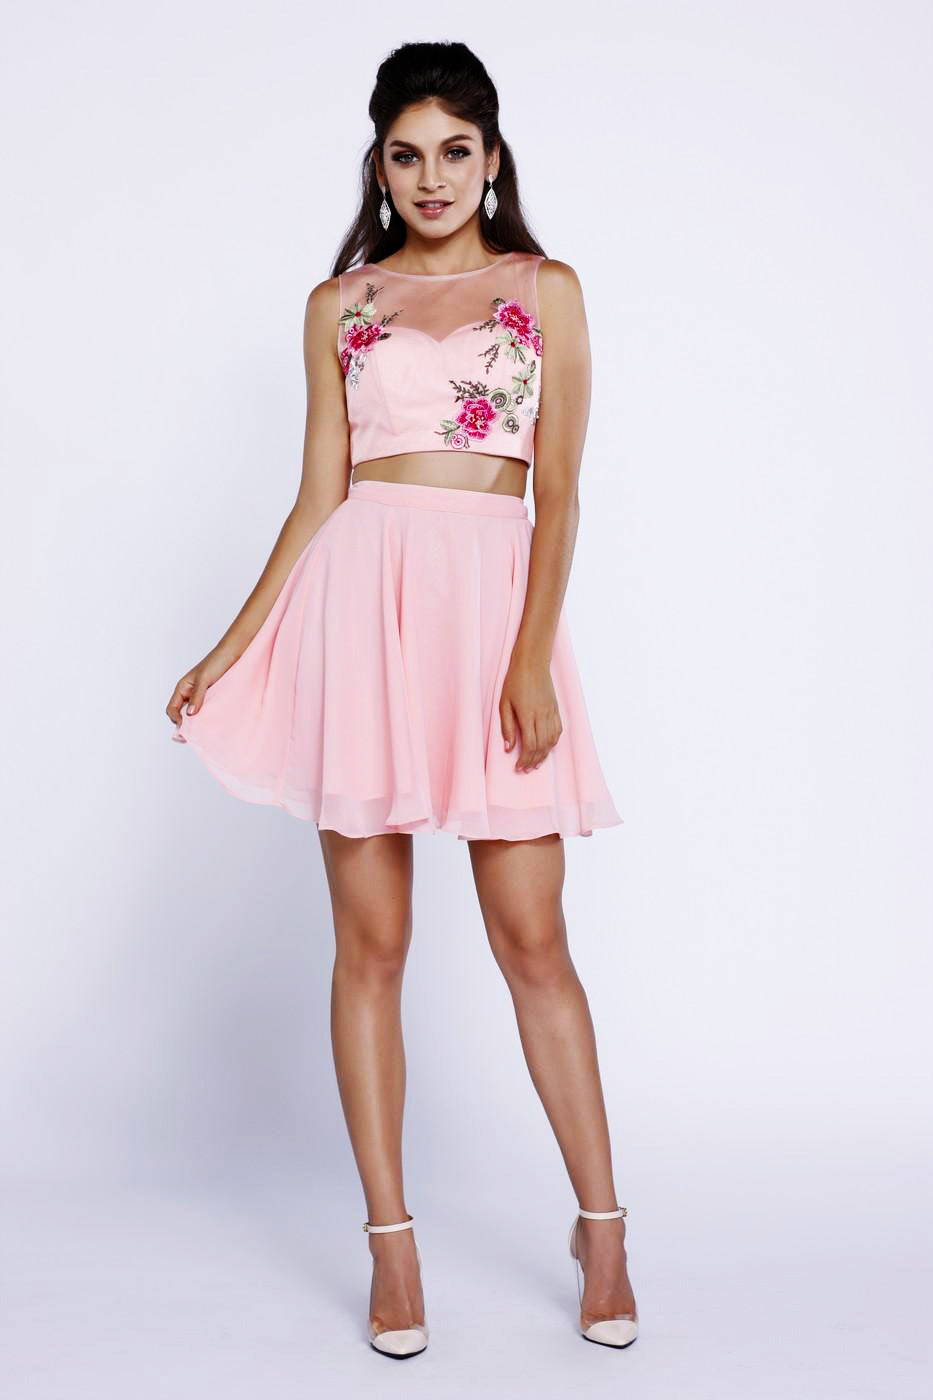 Pink Crop Top Floral Embroidered Dress_6246 BY NARIANNA